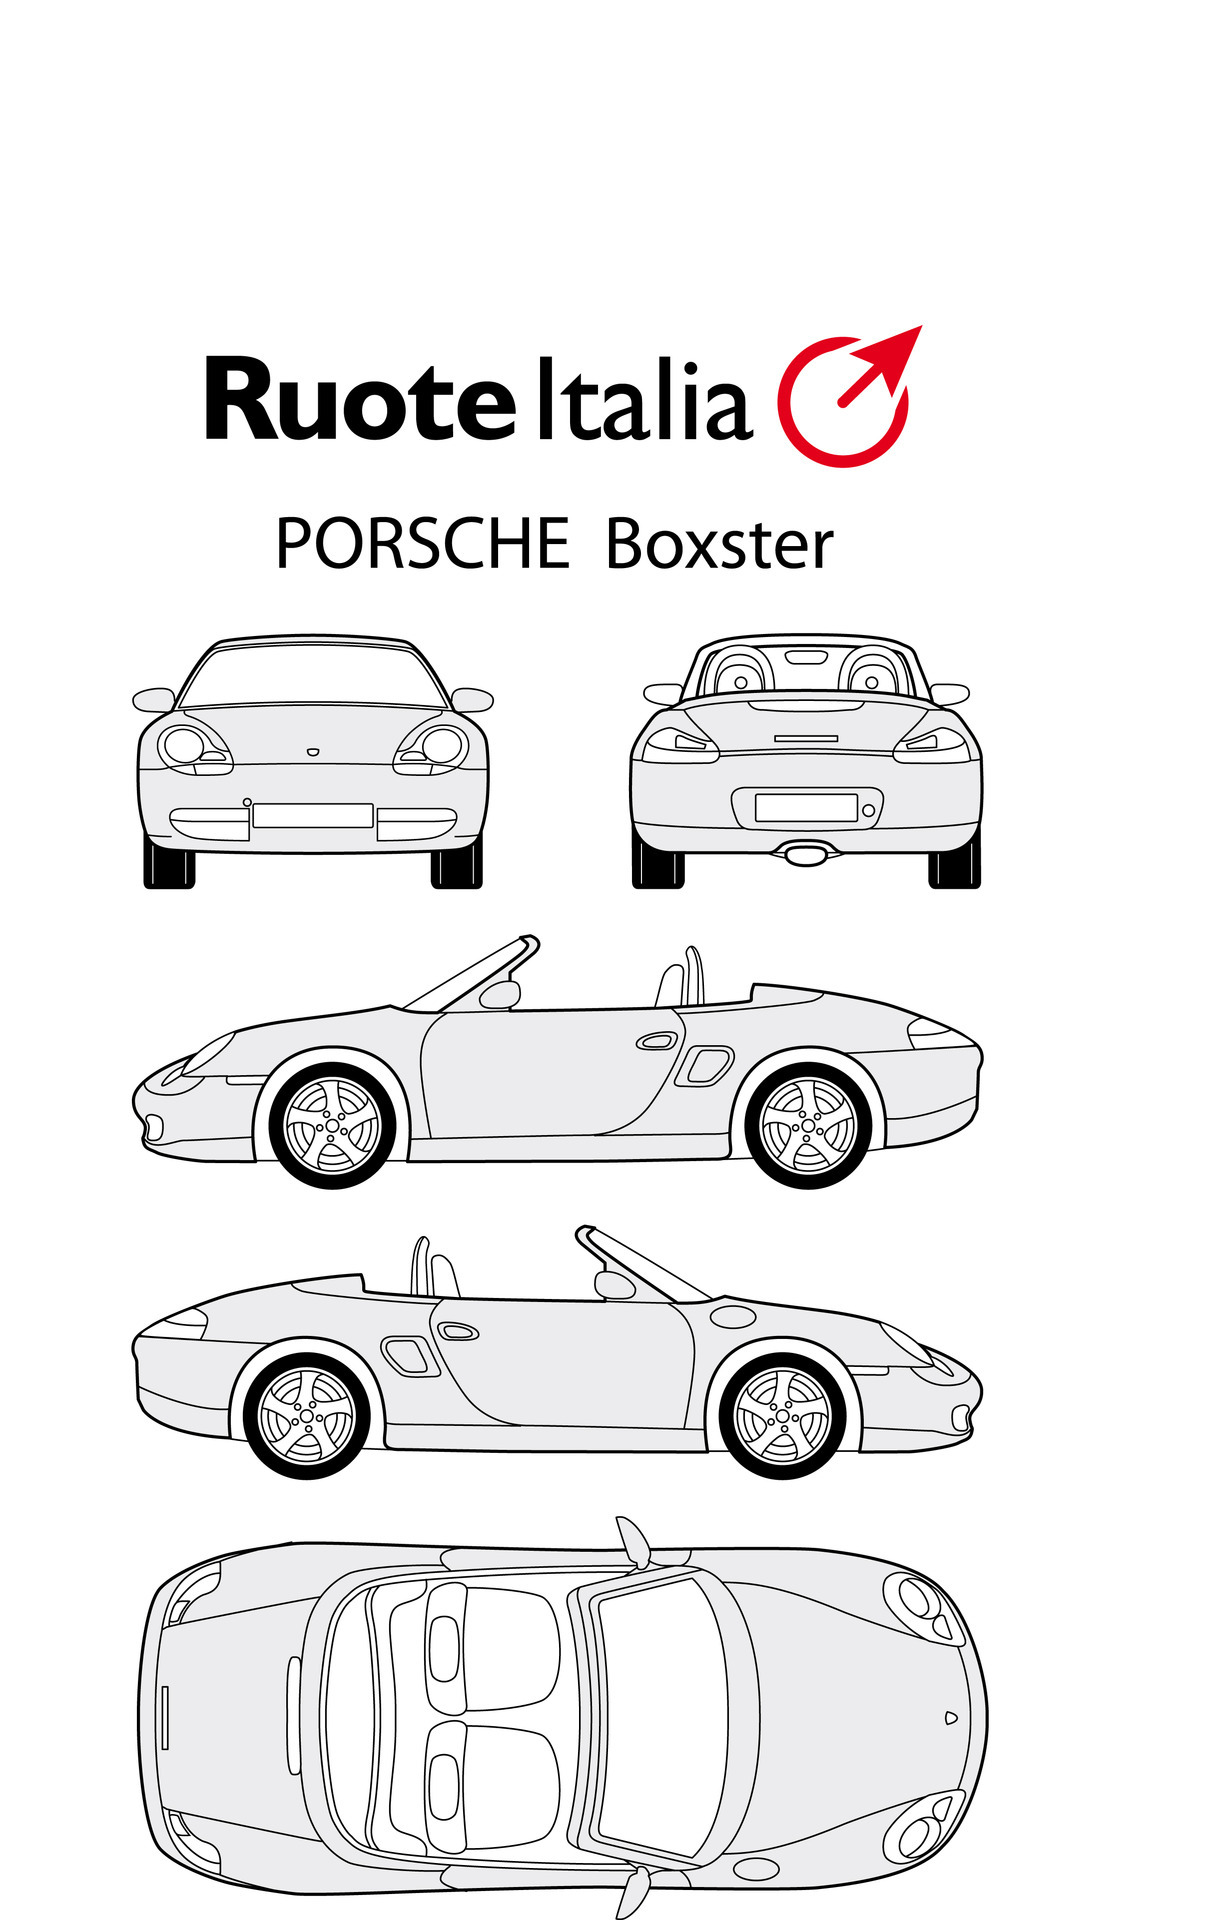 "PORSCHE  Boxster _______________________________ Ruote LatinaRuote Italia Il portale ospita aziende, uomini e piloti e vuol essere un luogo di incontro tra quanti vivono le ""ruote"", qualunque esse siano, con passione, consci del valore che l'invenzione della ruota ha rappresentato per l'umanità tutta. Seguiteci con attenzione, non ve ne pentirete.  Wheels Latina      Wheels  Italy The portal hosts companies, pilots and men and wishes to become a meeting place between those who live the ""wheels"", whatever they are, with passion, conscious of the value that the invention of the wheel has been for all of humanity. Follow carefully, you will not regret. Please Follow: http://www.ruotelatina.com ruotelatina@gmail.com"